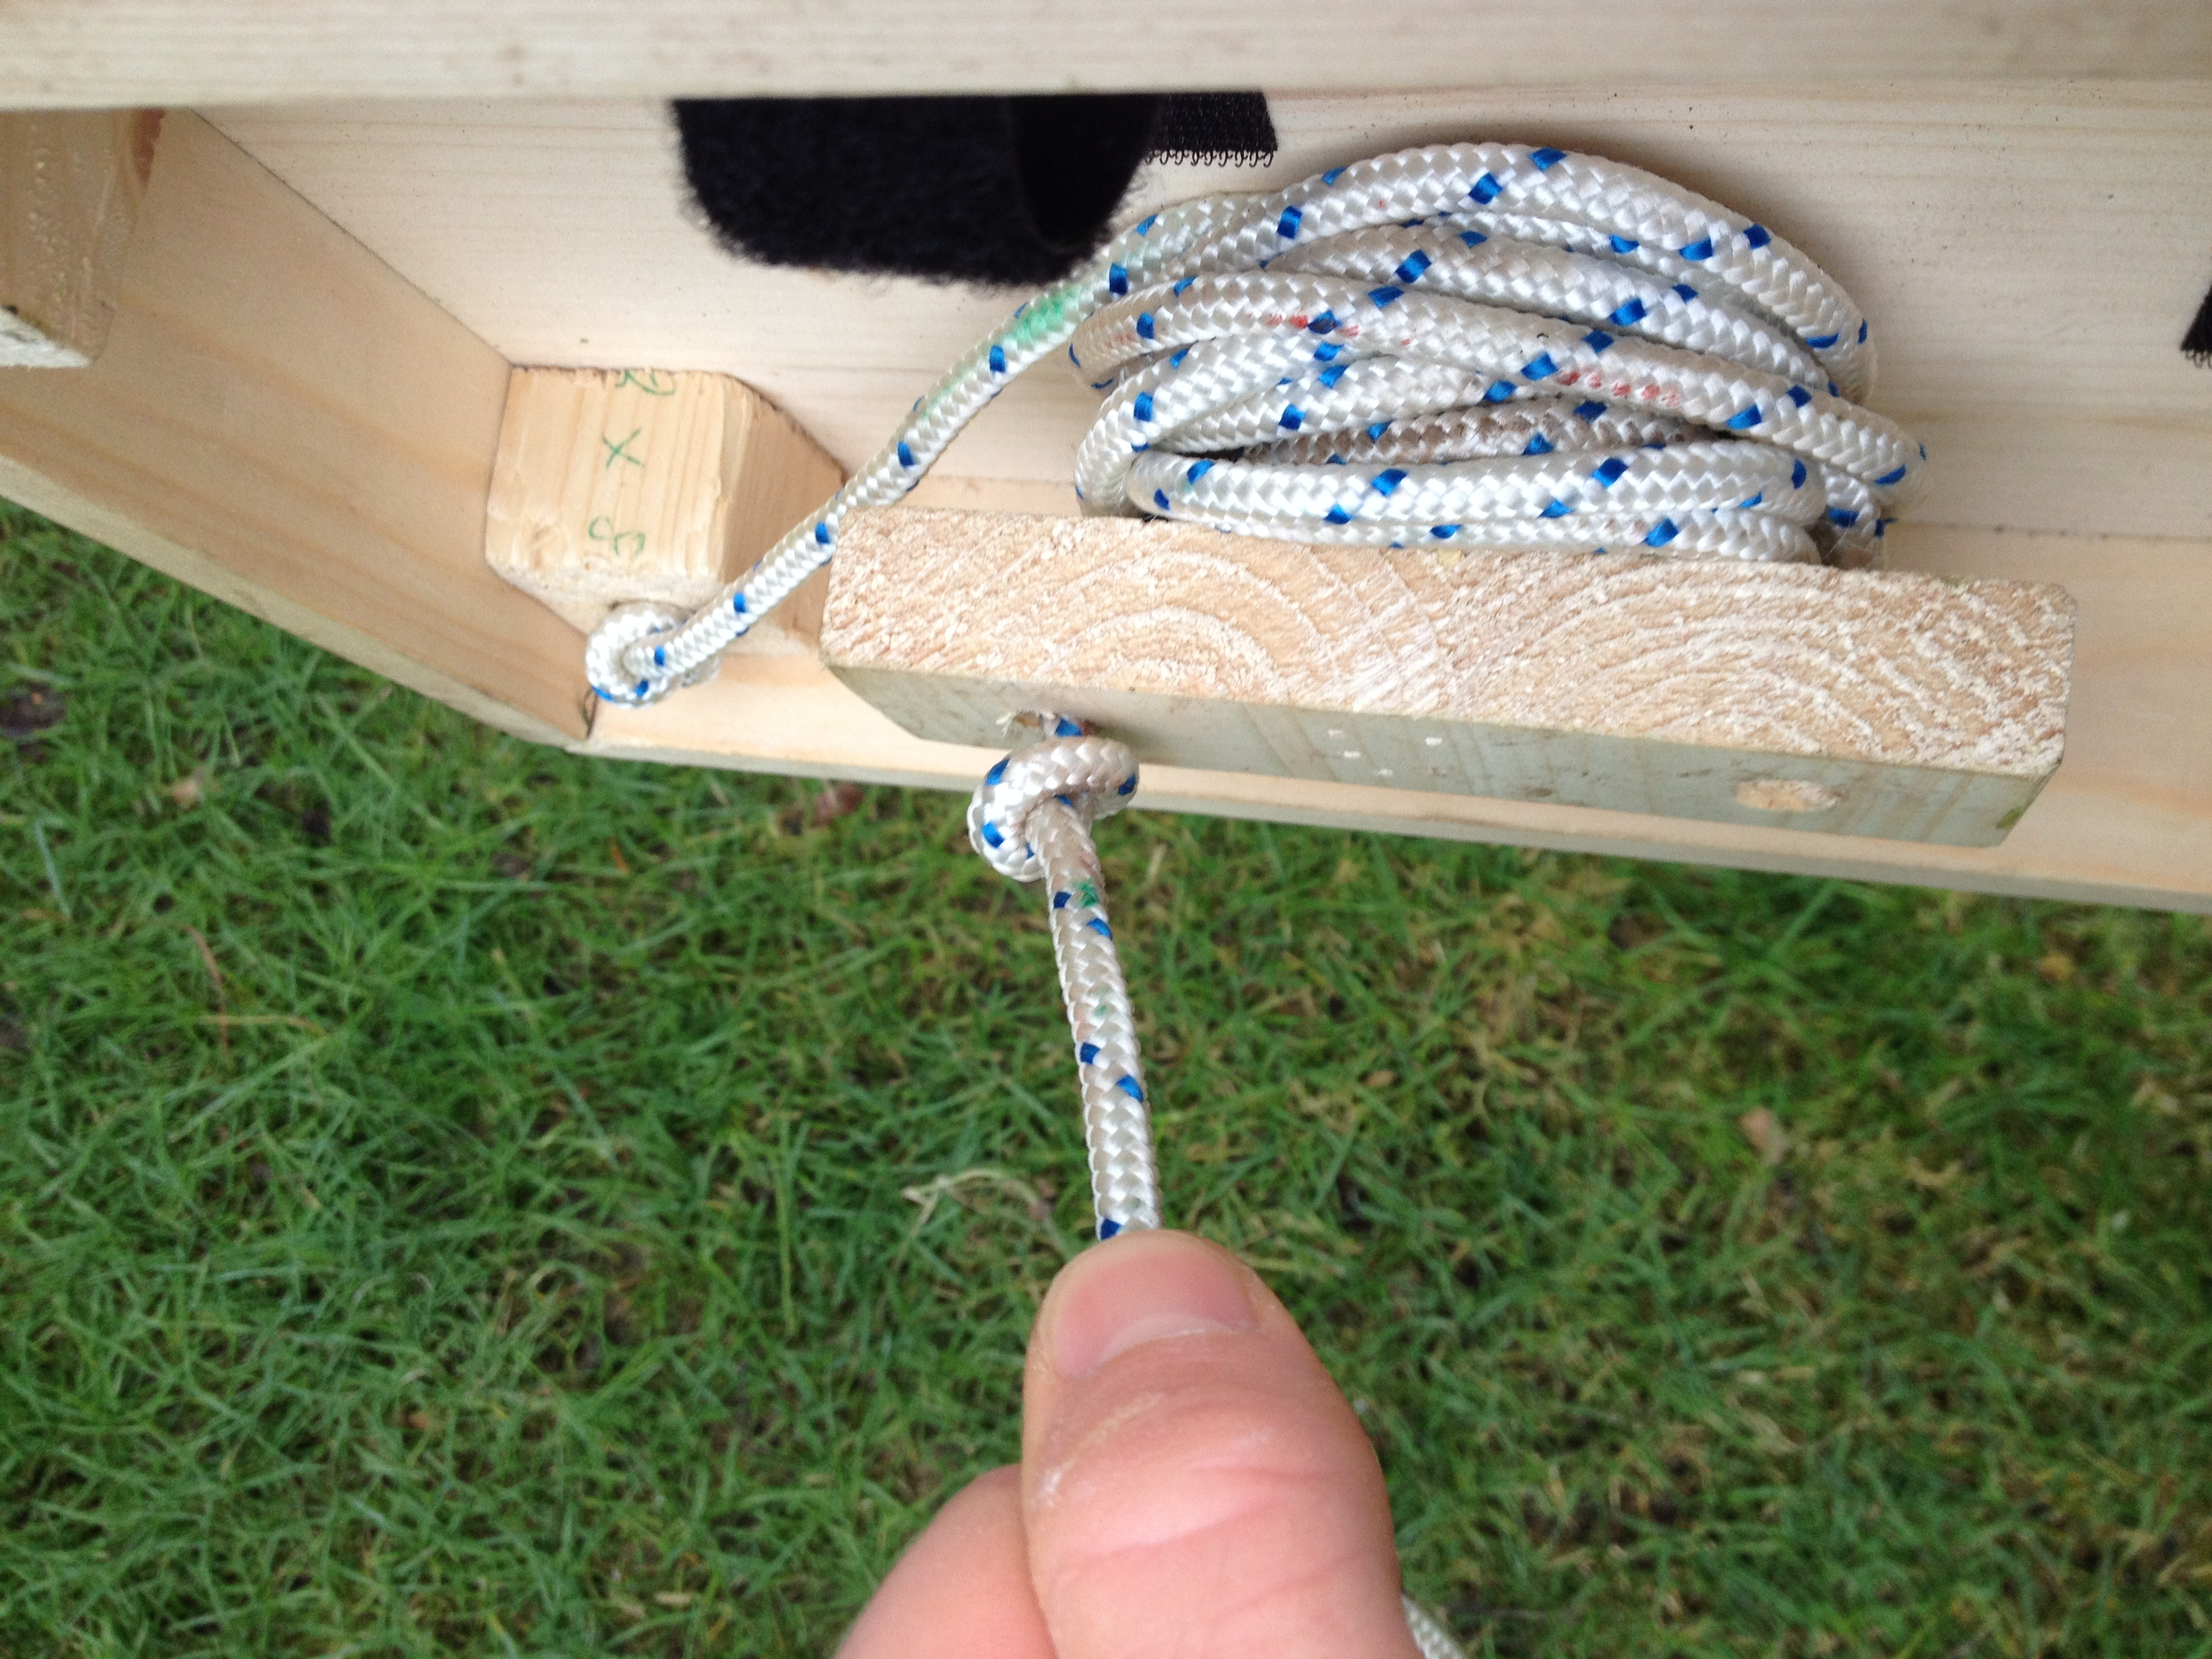 Picture of Bandaging and Knotsing of the Rope